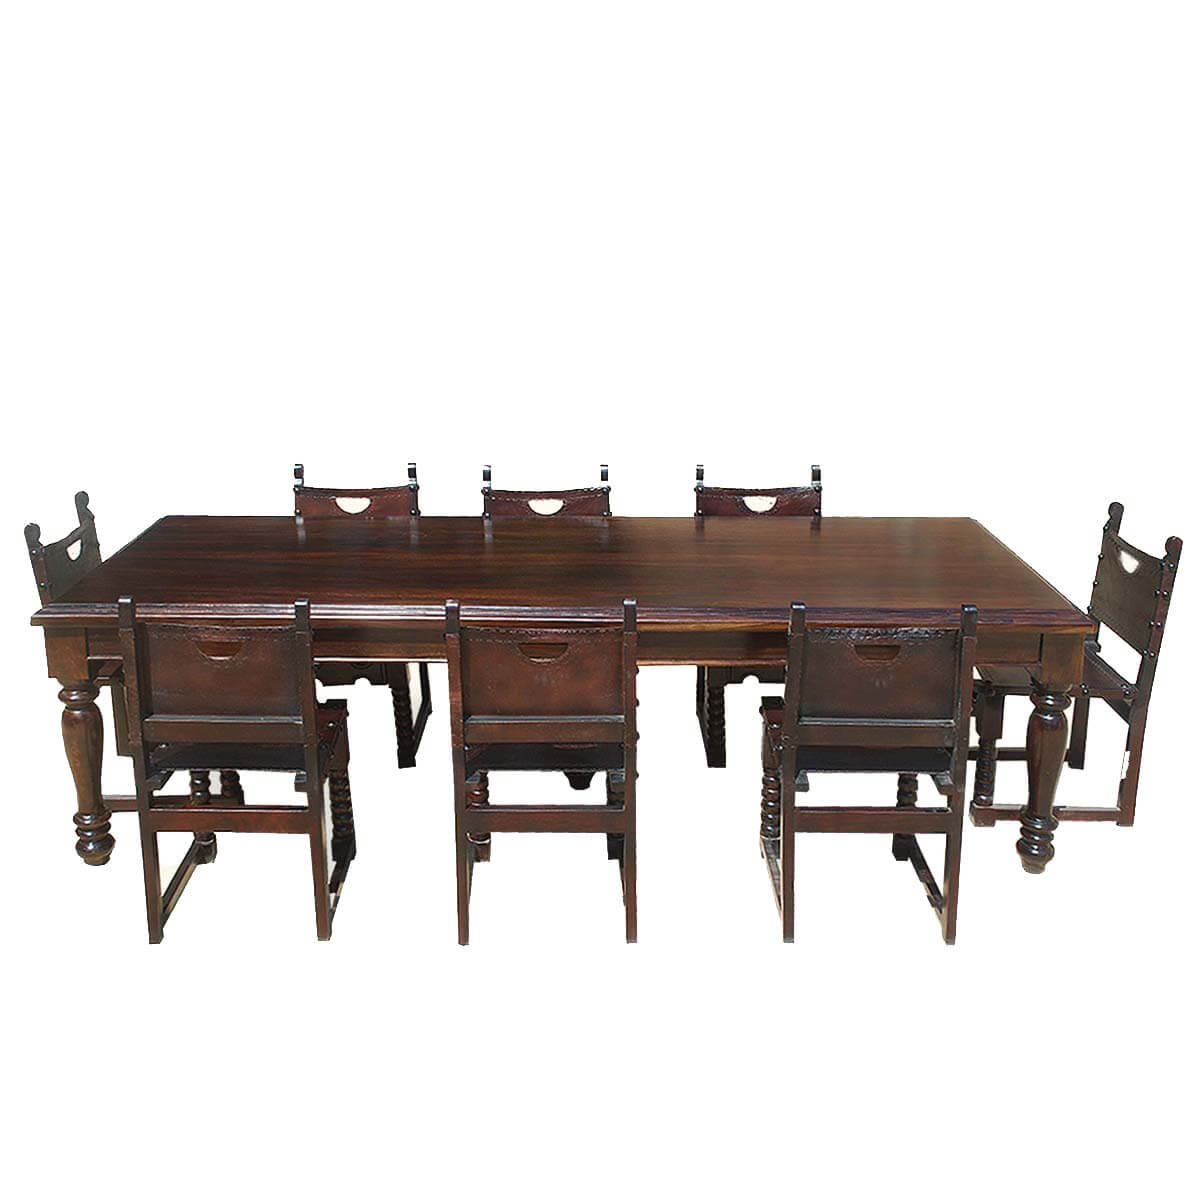 Large rustic solid wood dining room table w 8 leather for Dining room table and 8 chairs